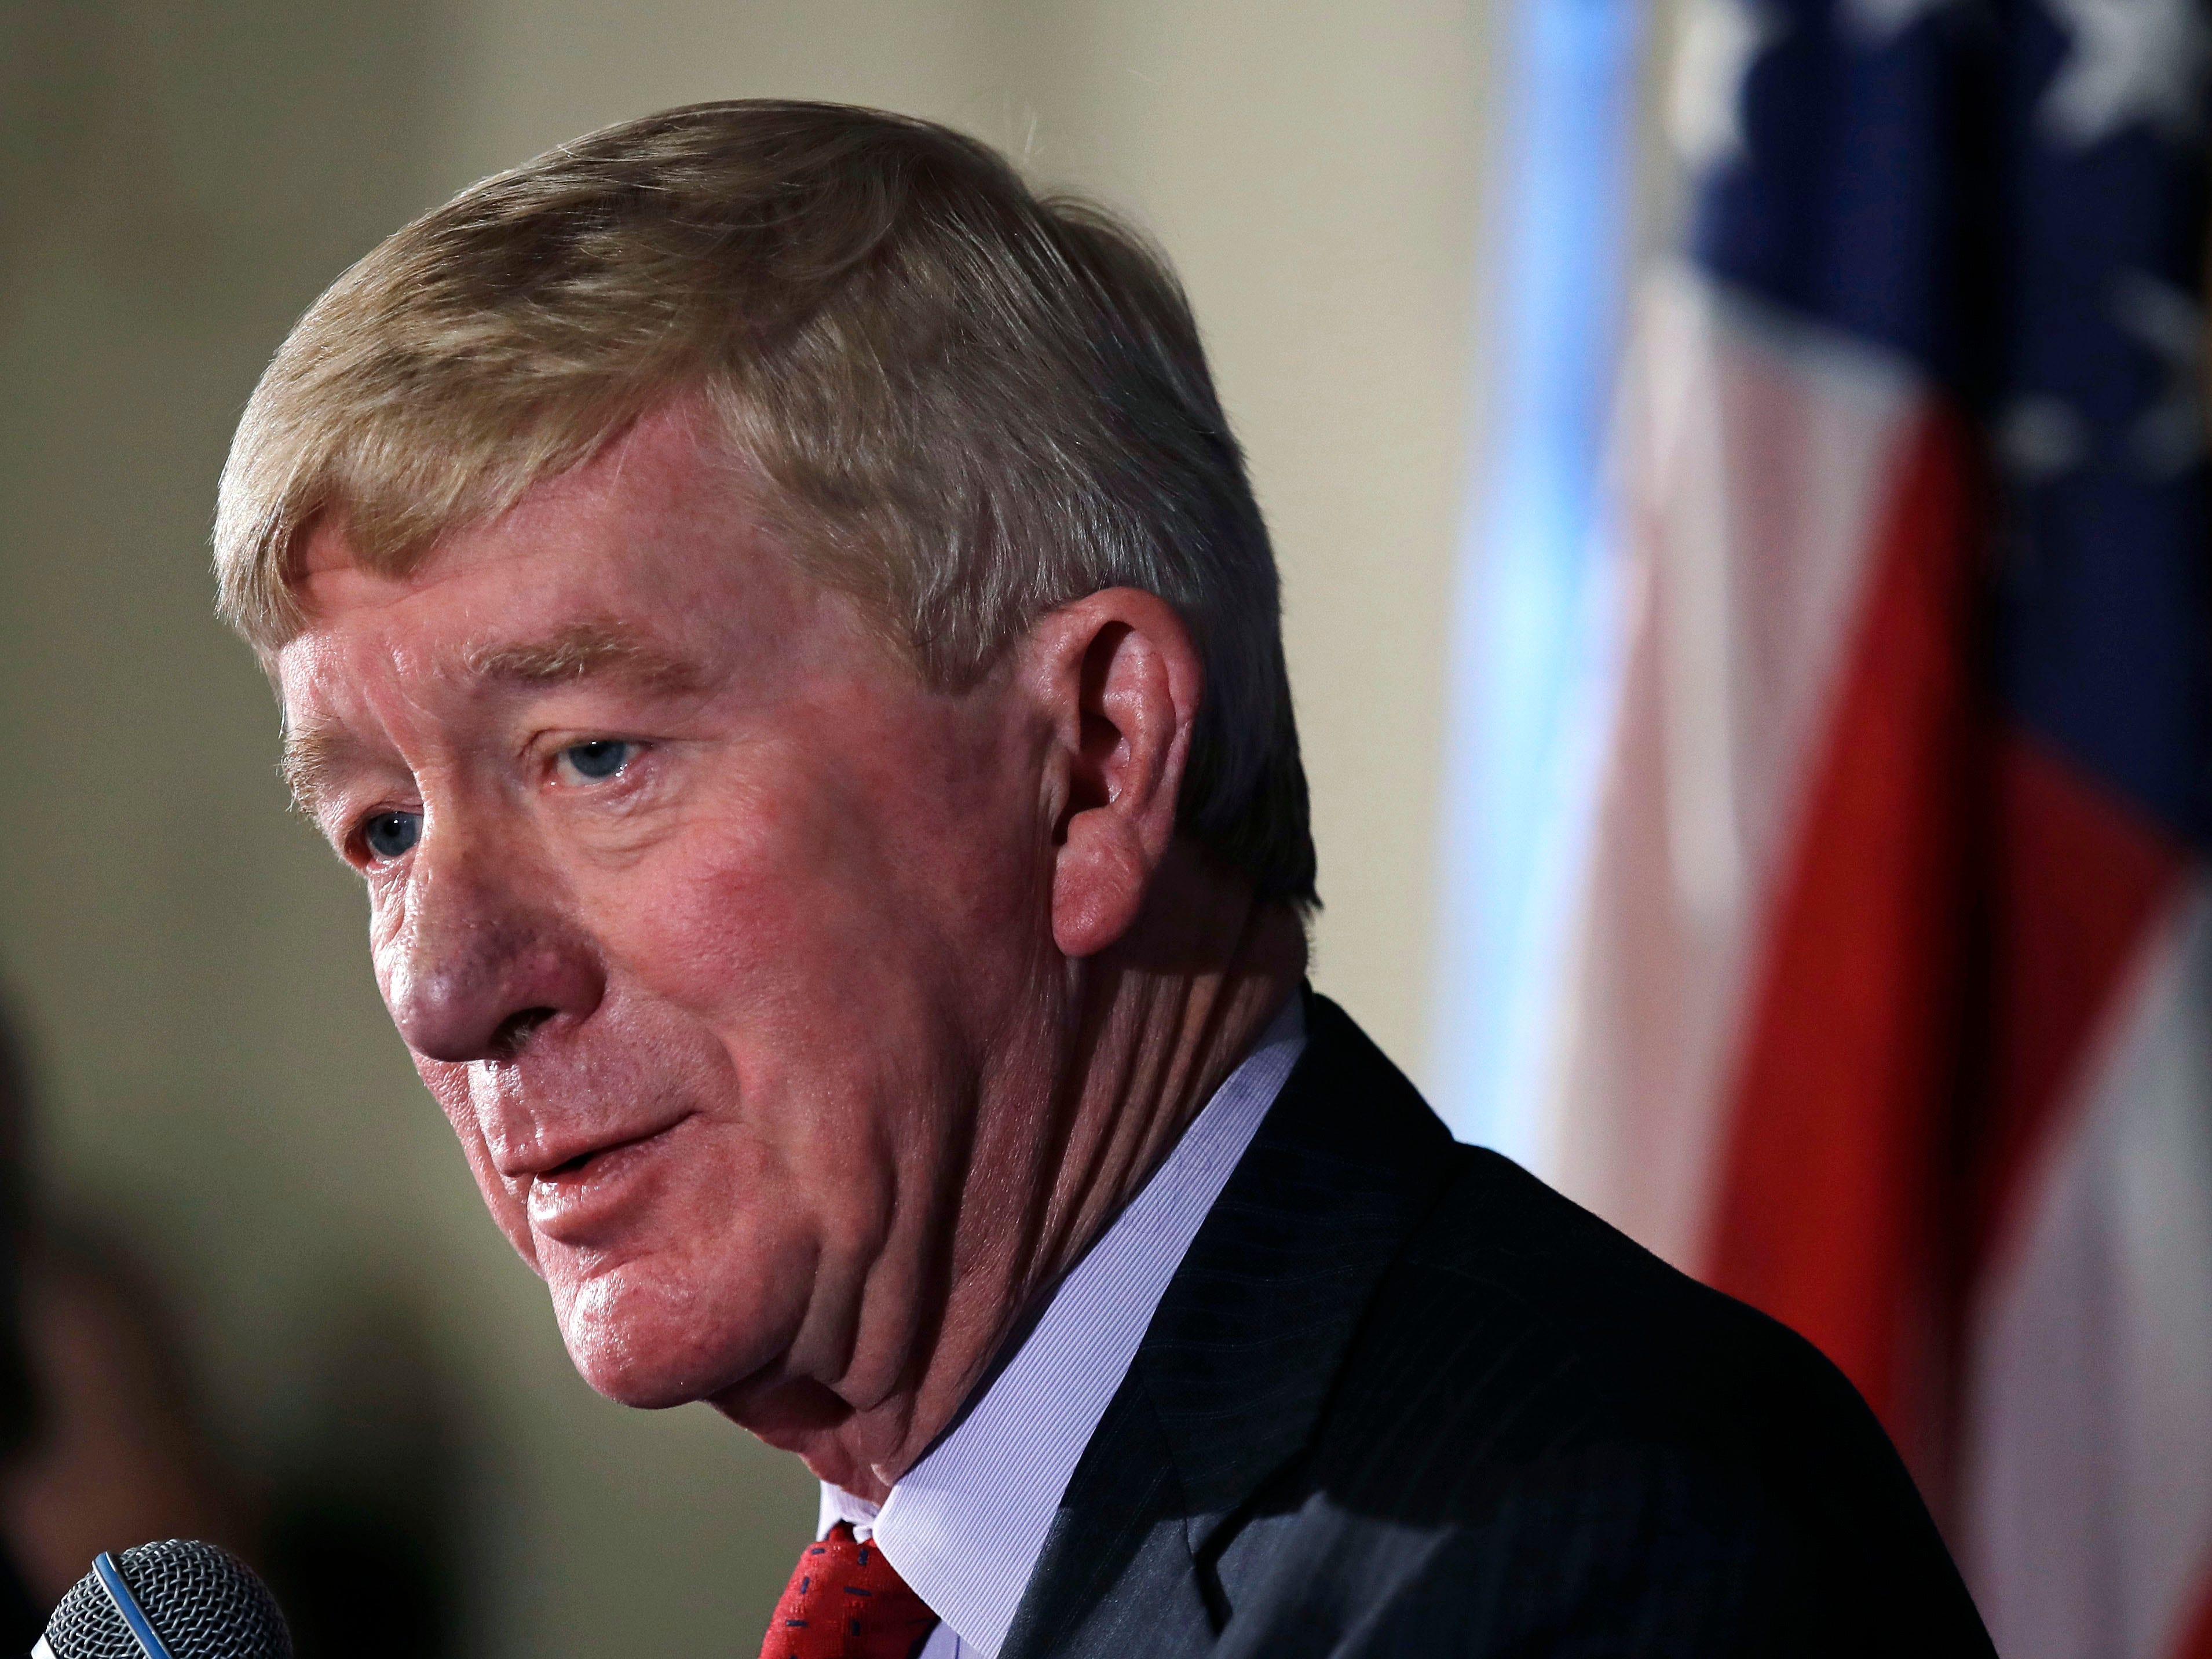 Former Massachusetts Gov. William Weld announced he's creating a presidential exploratory committee for a run in the 2020 election on Feb. 15, 2019 as a Republican.